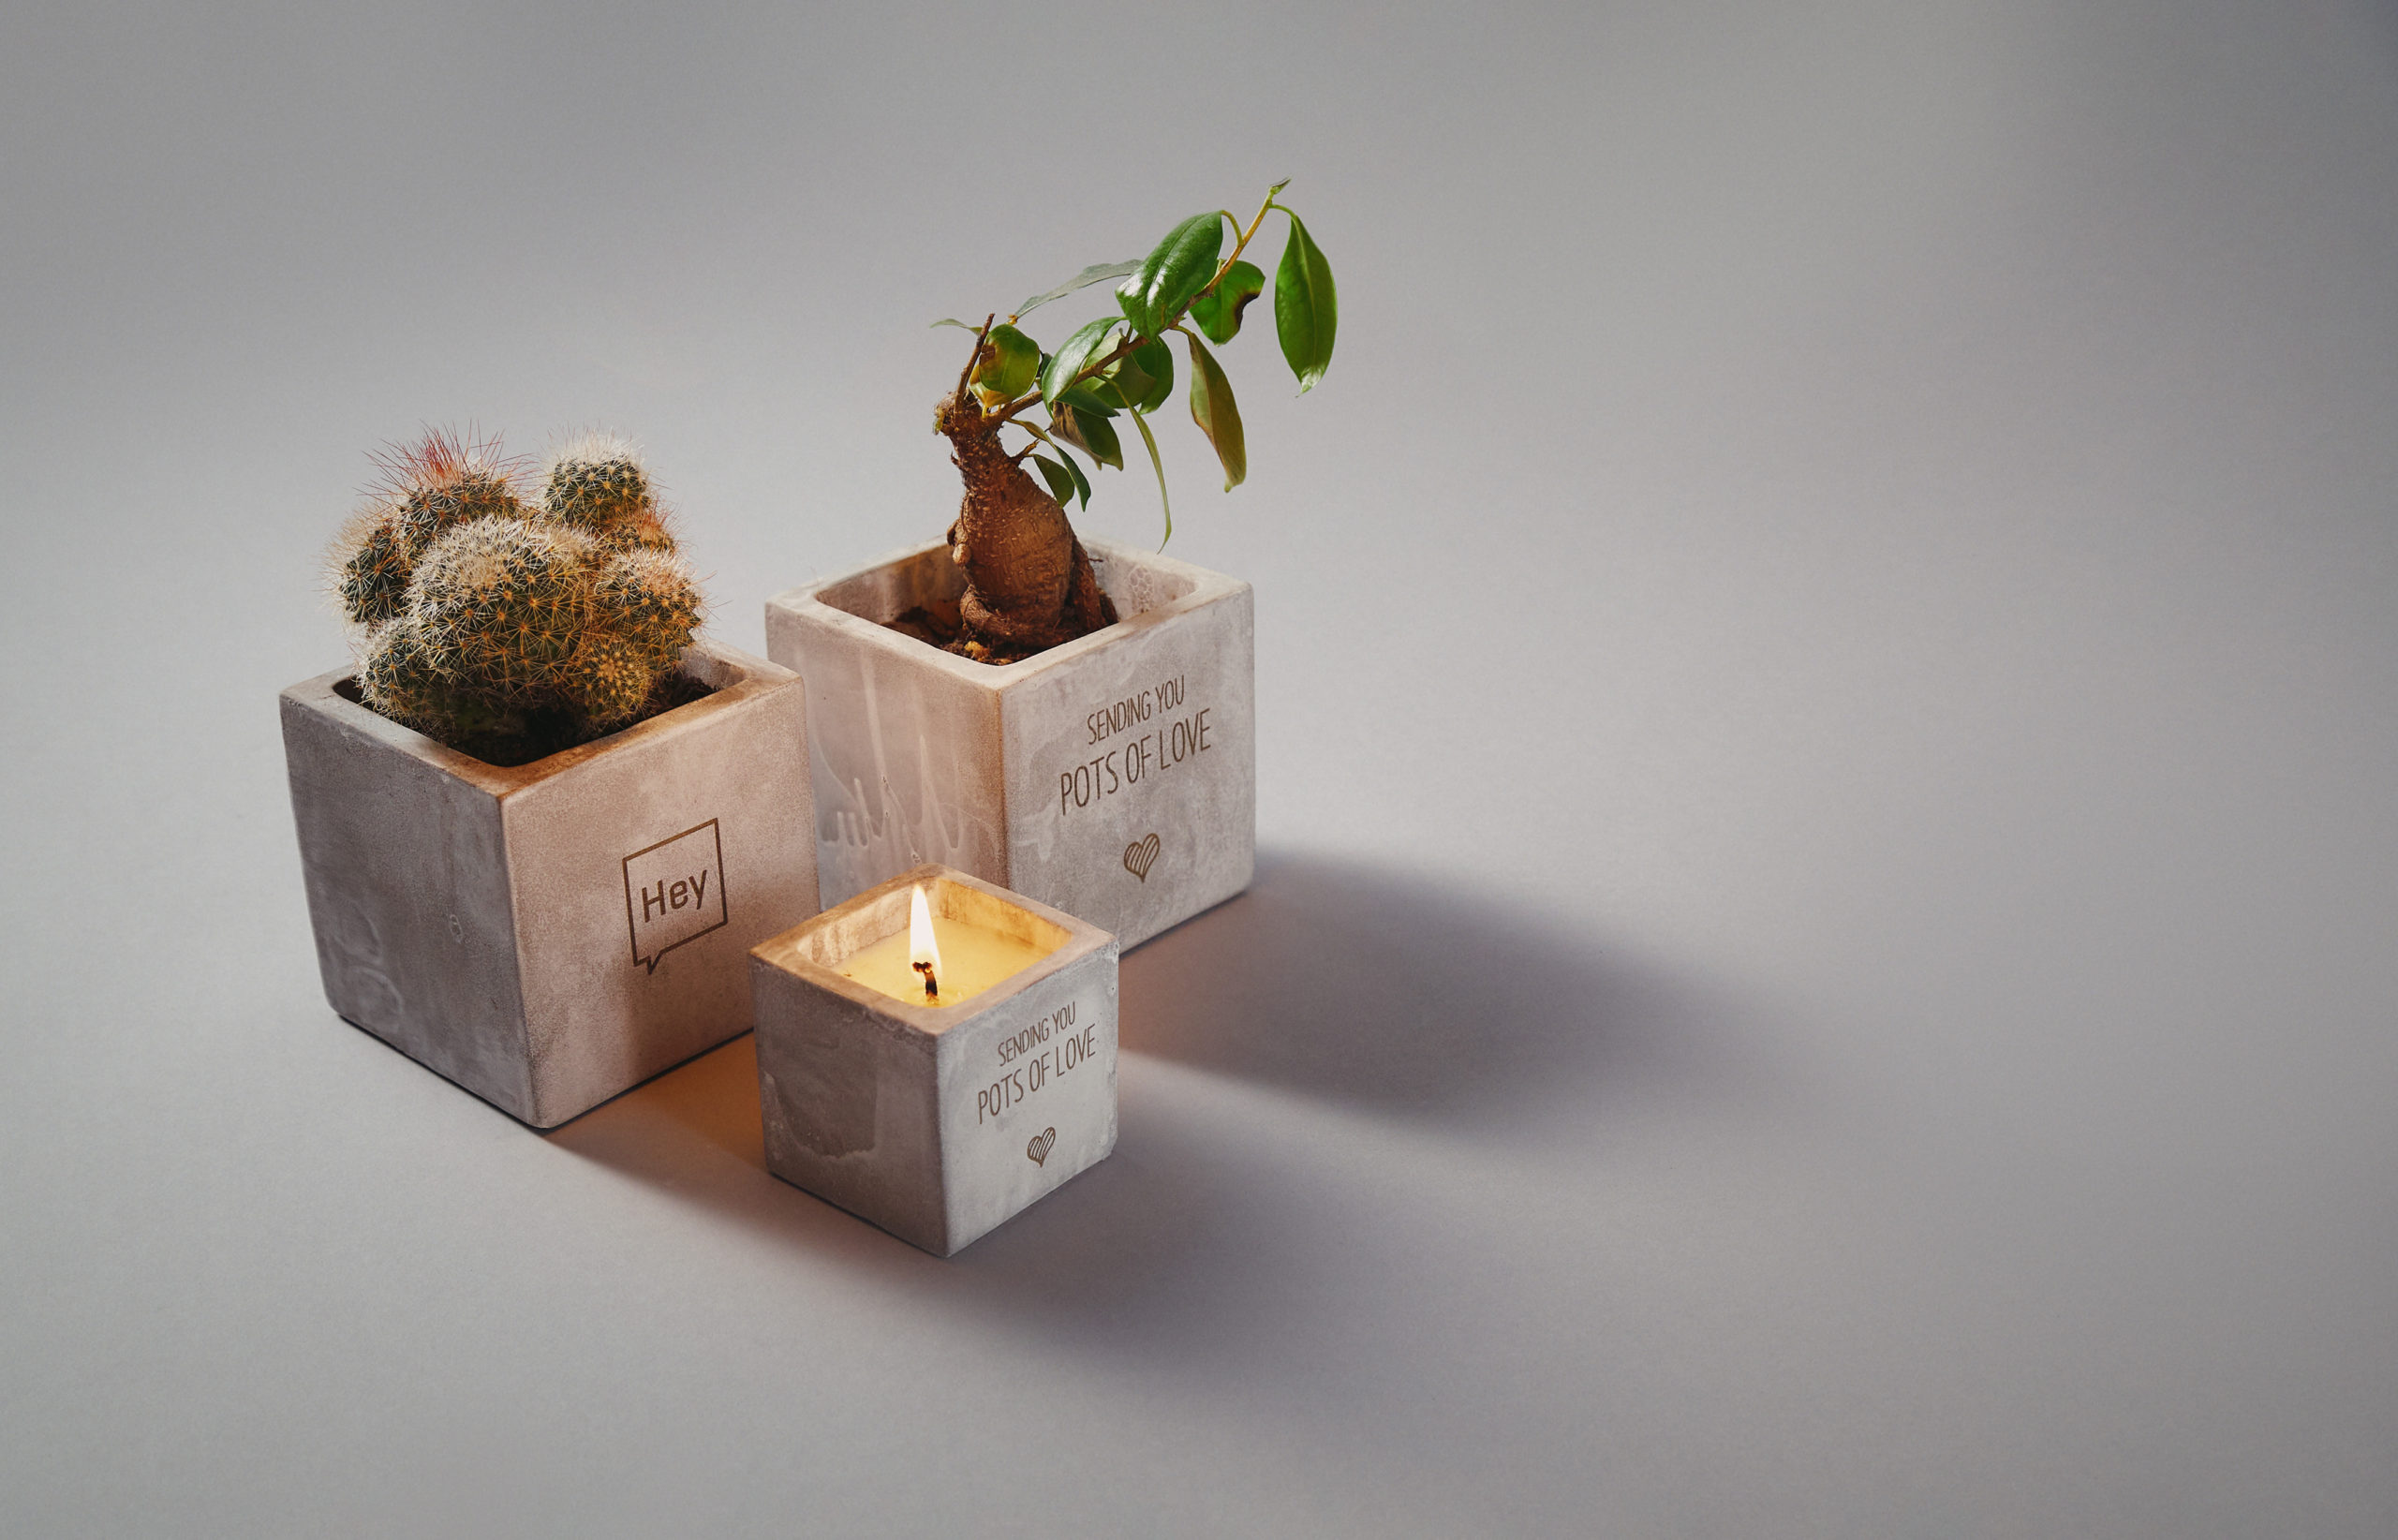 Promotional wellbeing candles and plants